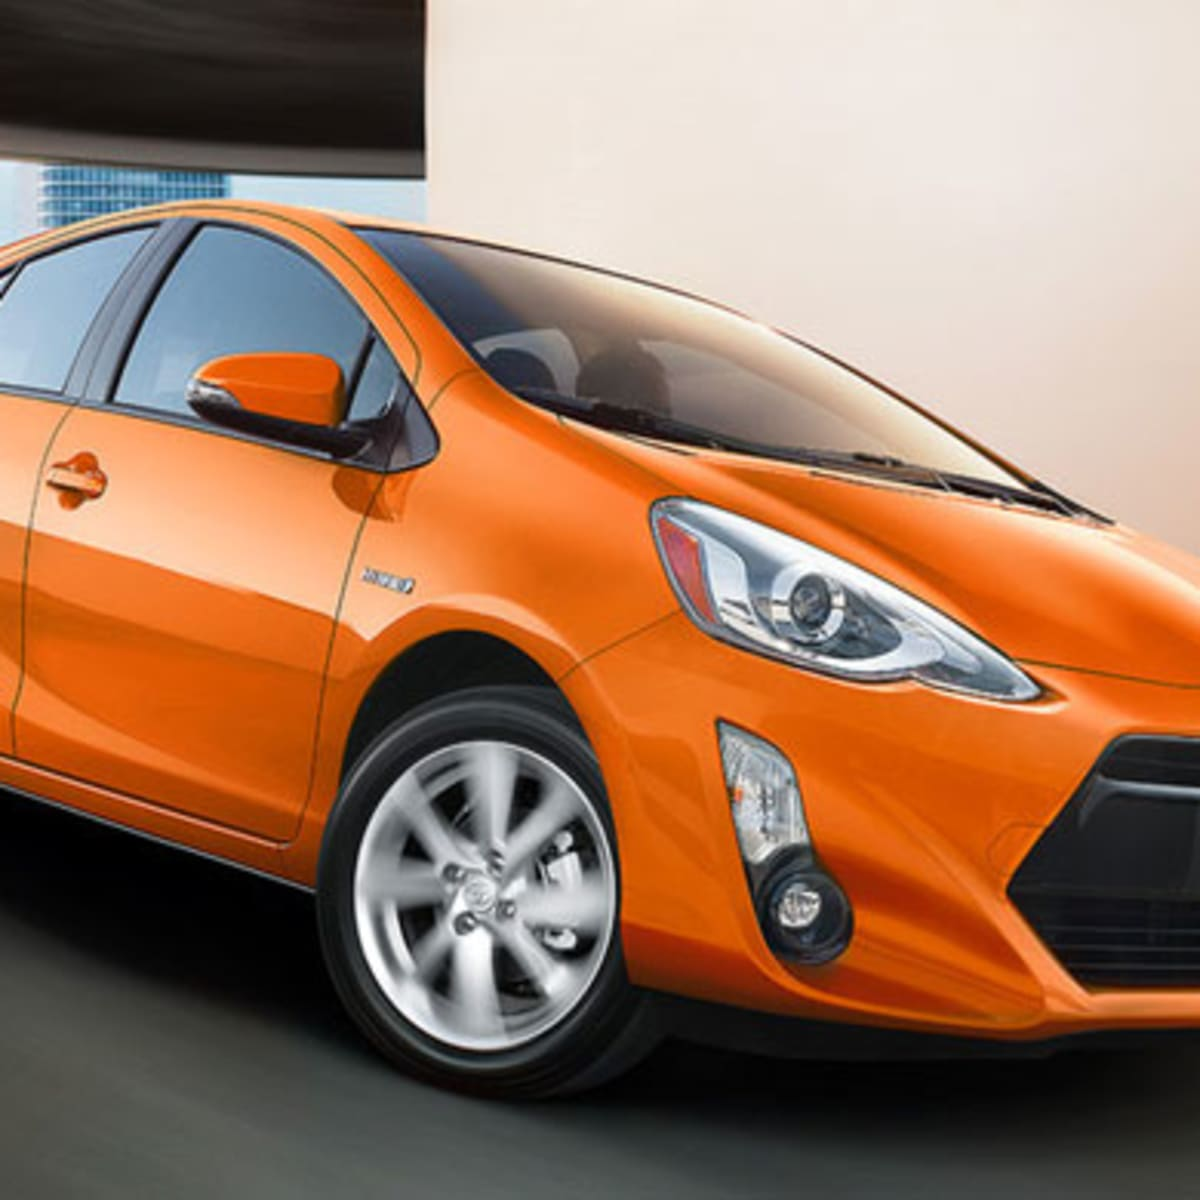 7 Hybrid Vehicles That Get 40 Mpg Or Better Without A Plug Thestreet